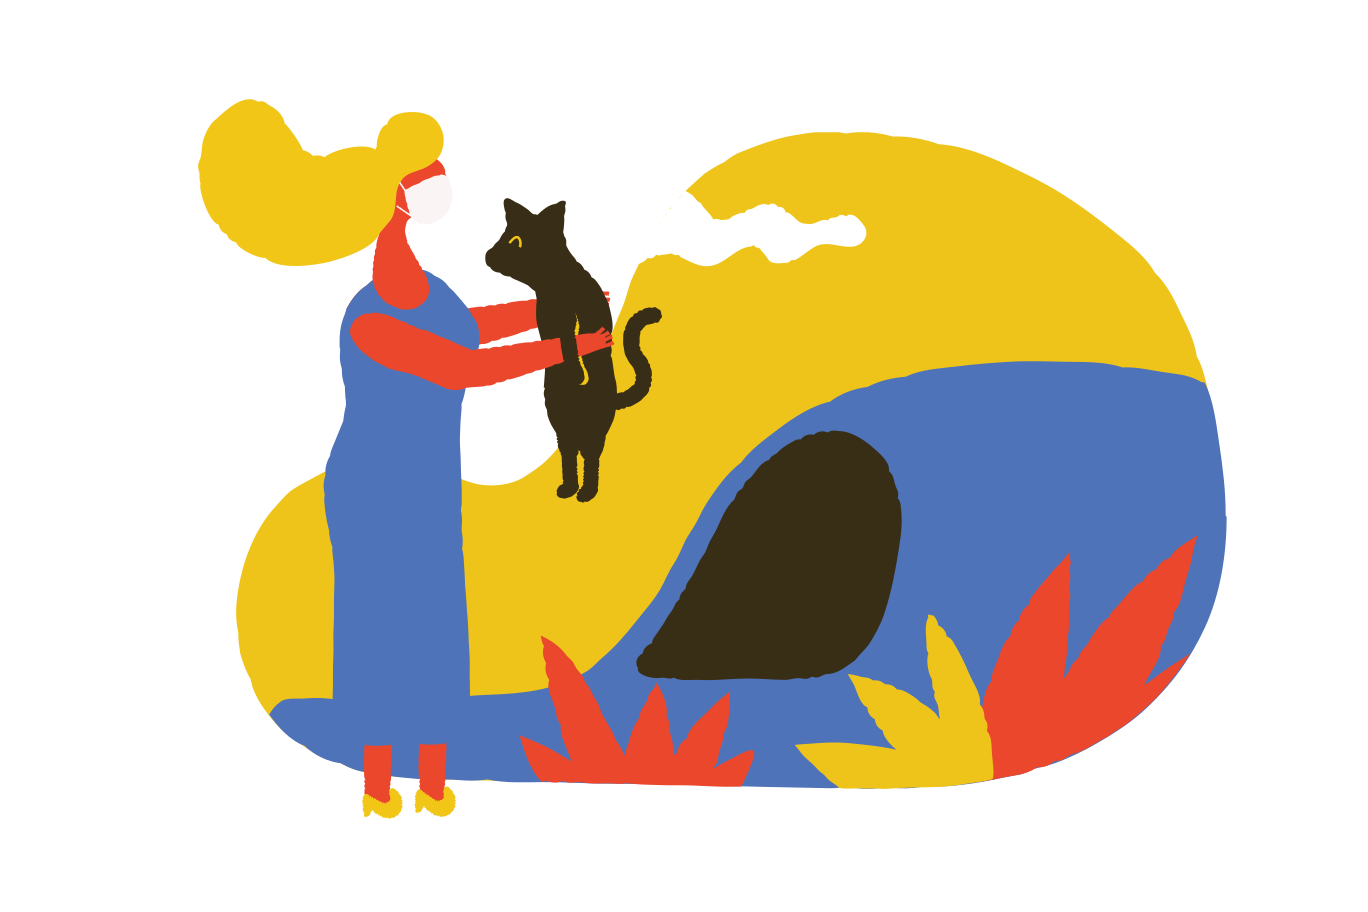 Finding a runaway cat Clipart illustration in PNG, SVG